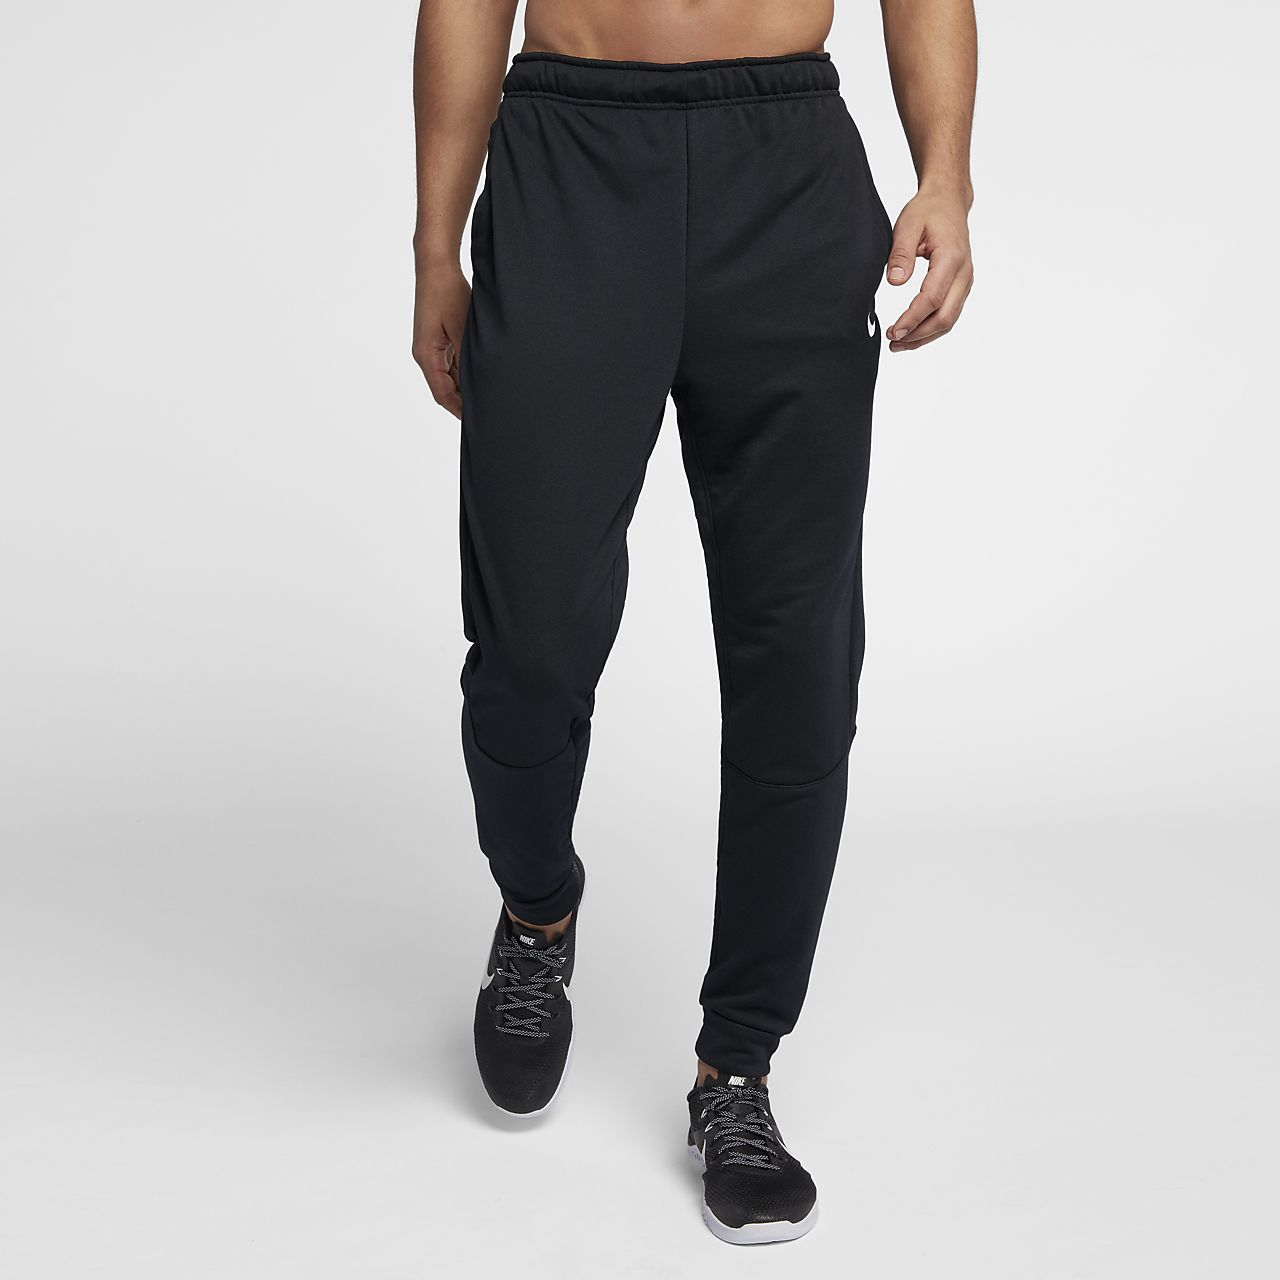 new product d29f1 f78eb ... Pantalon de training fuselé en tissu Fleece Nike Dri-FIT pour Homme